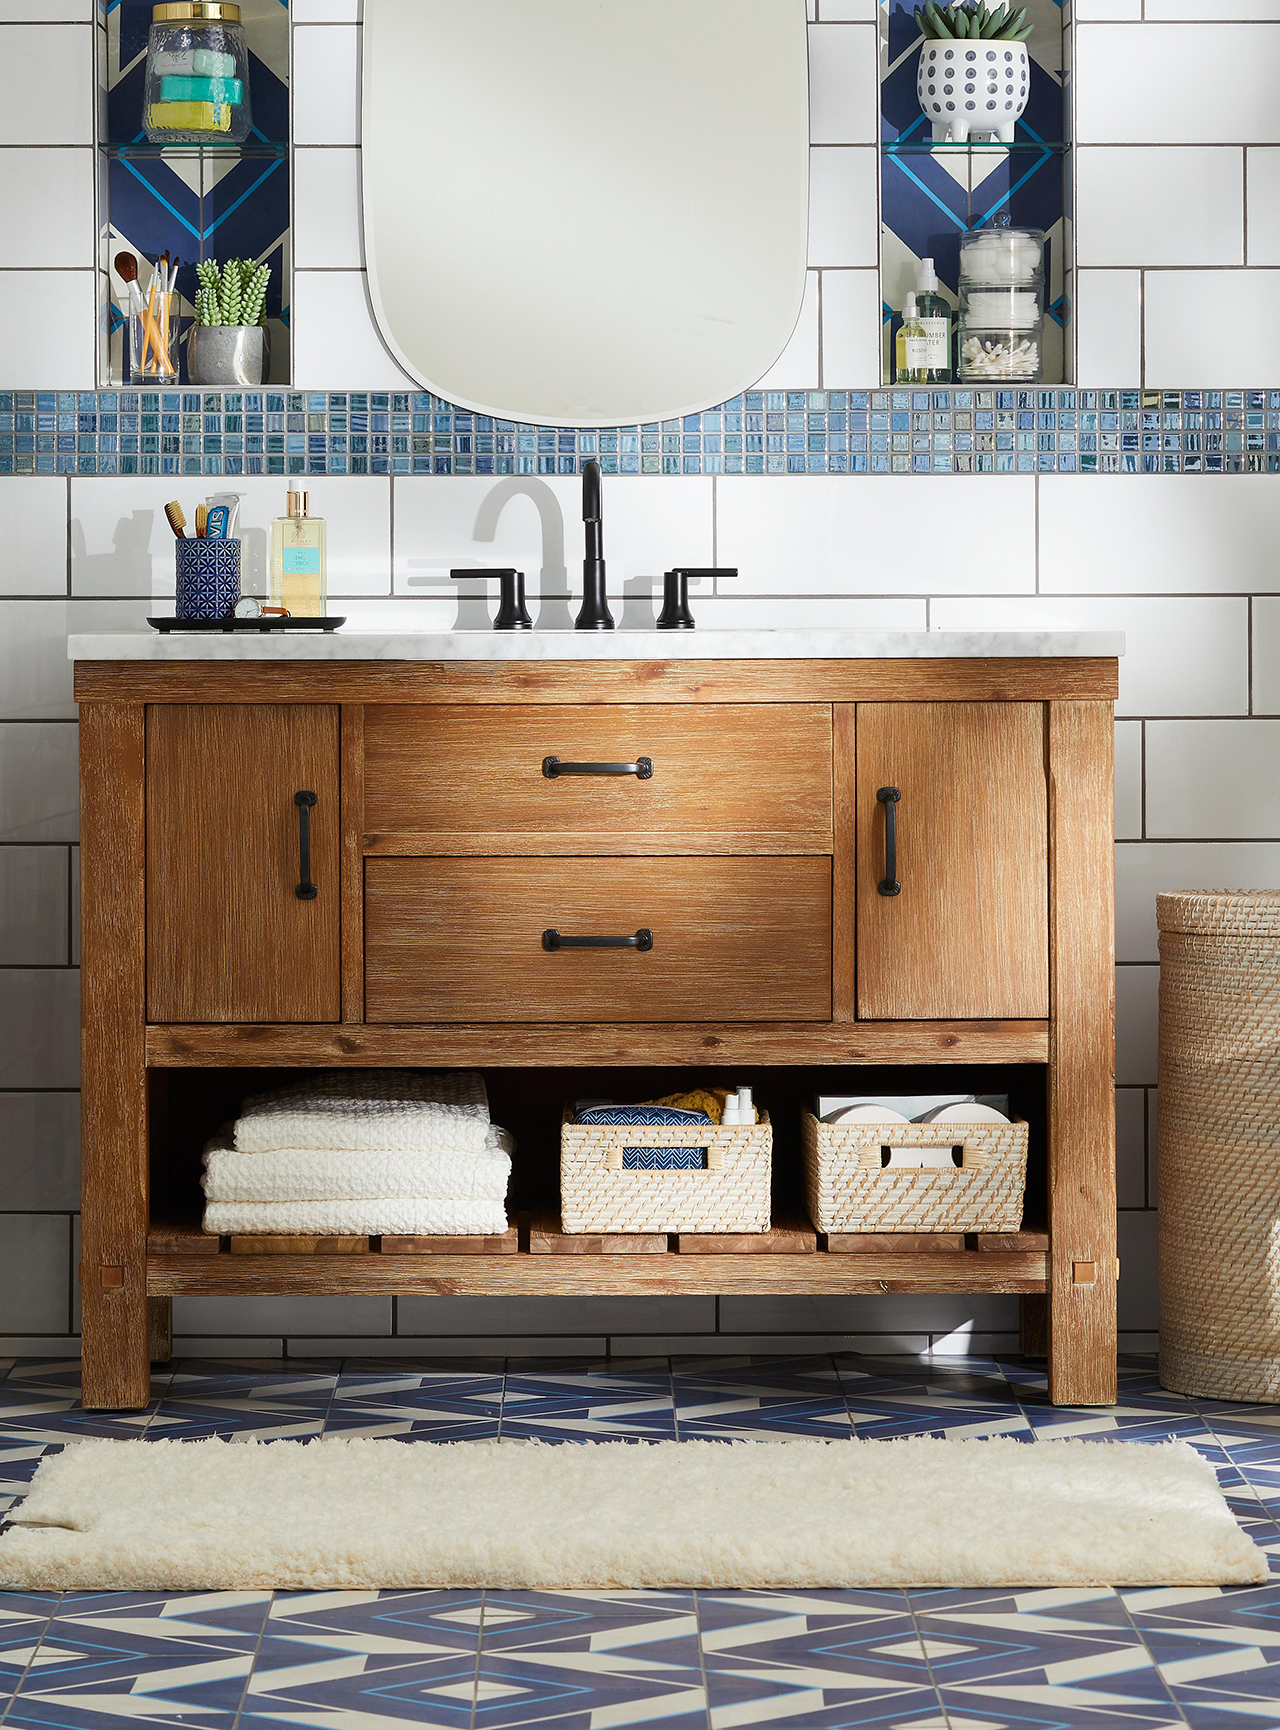 bathroom sink with blue tile flooring and wood shelving